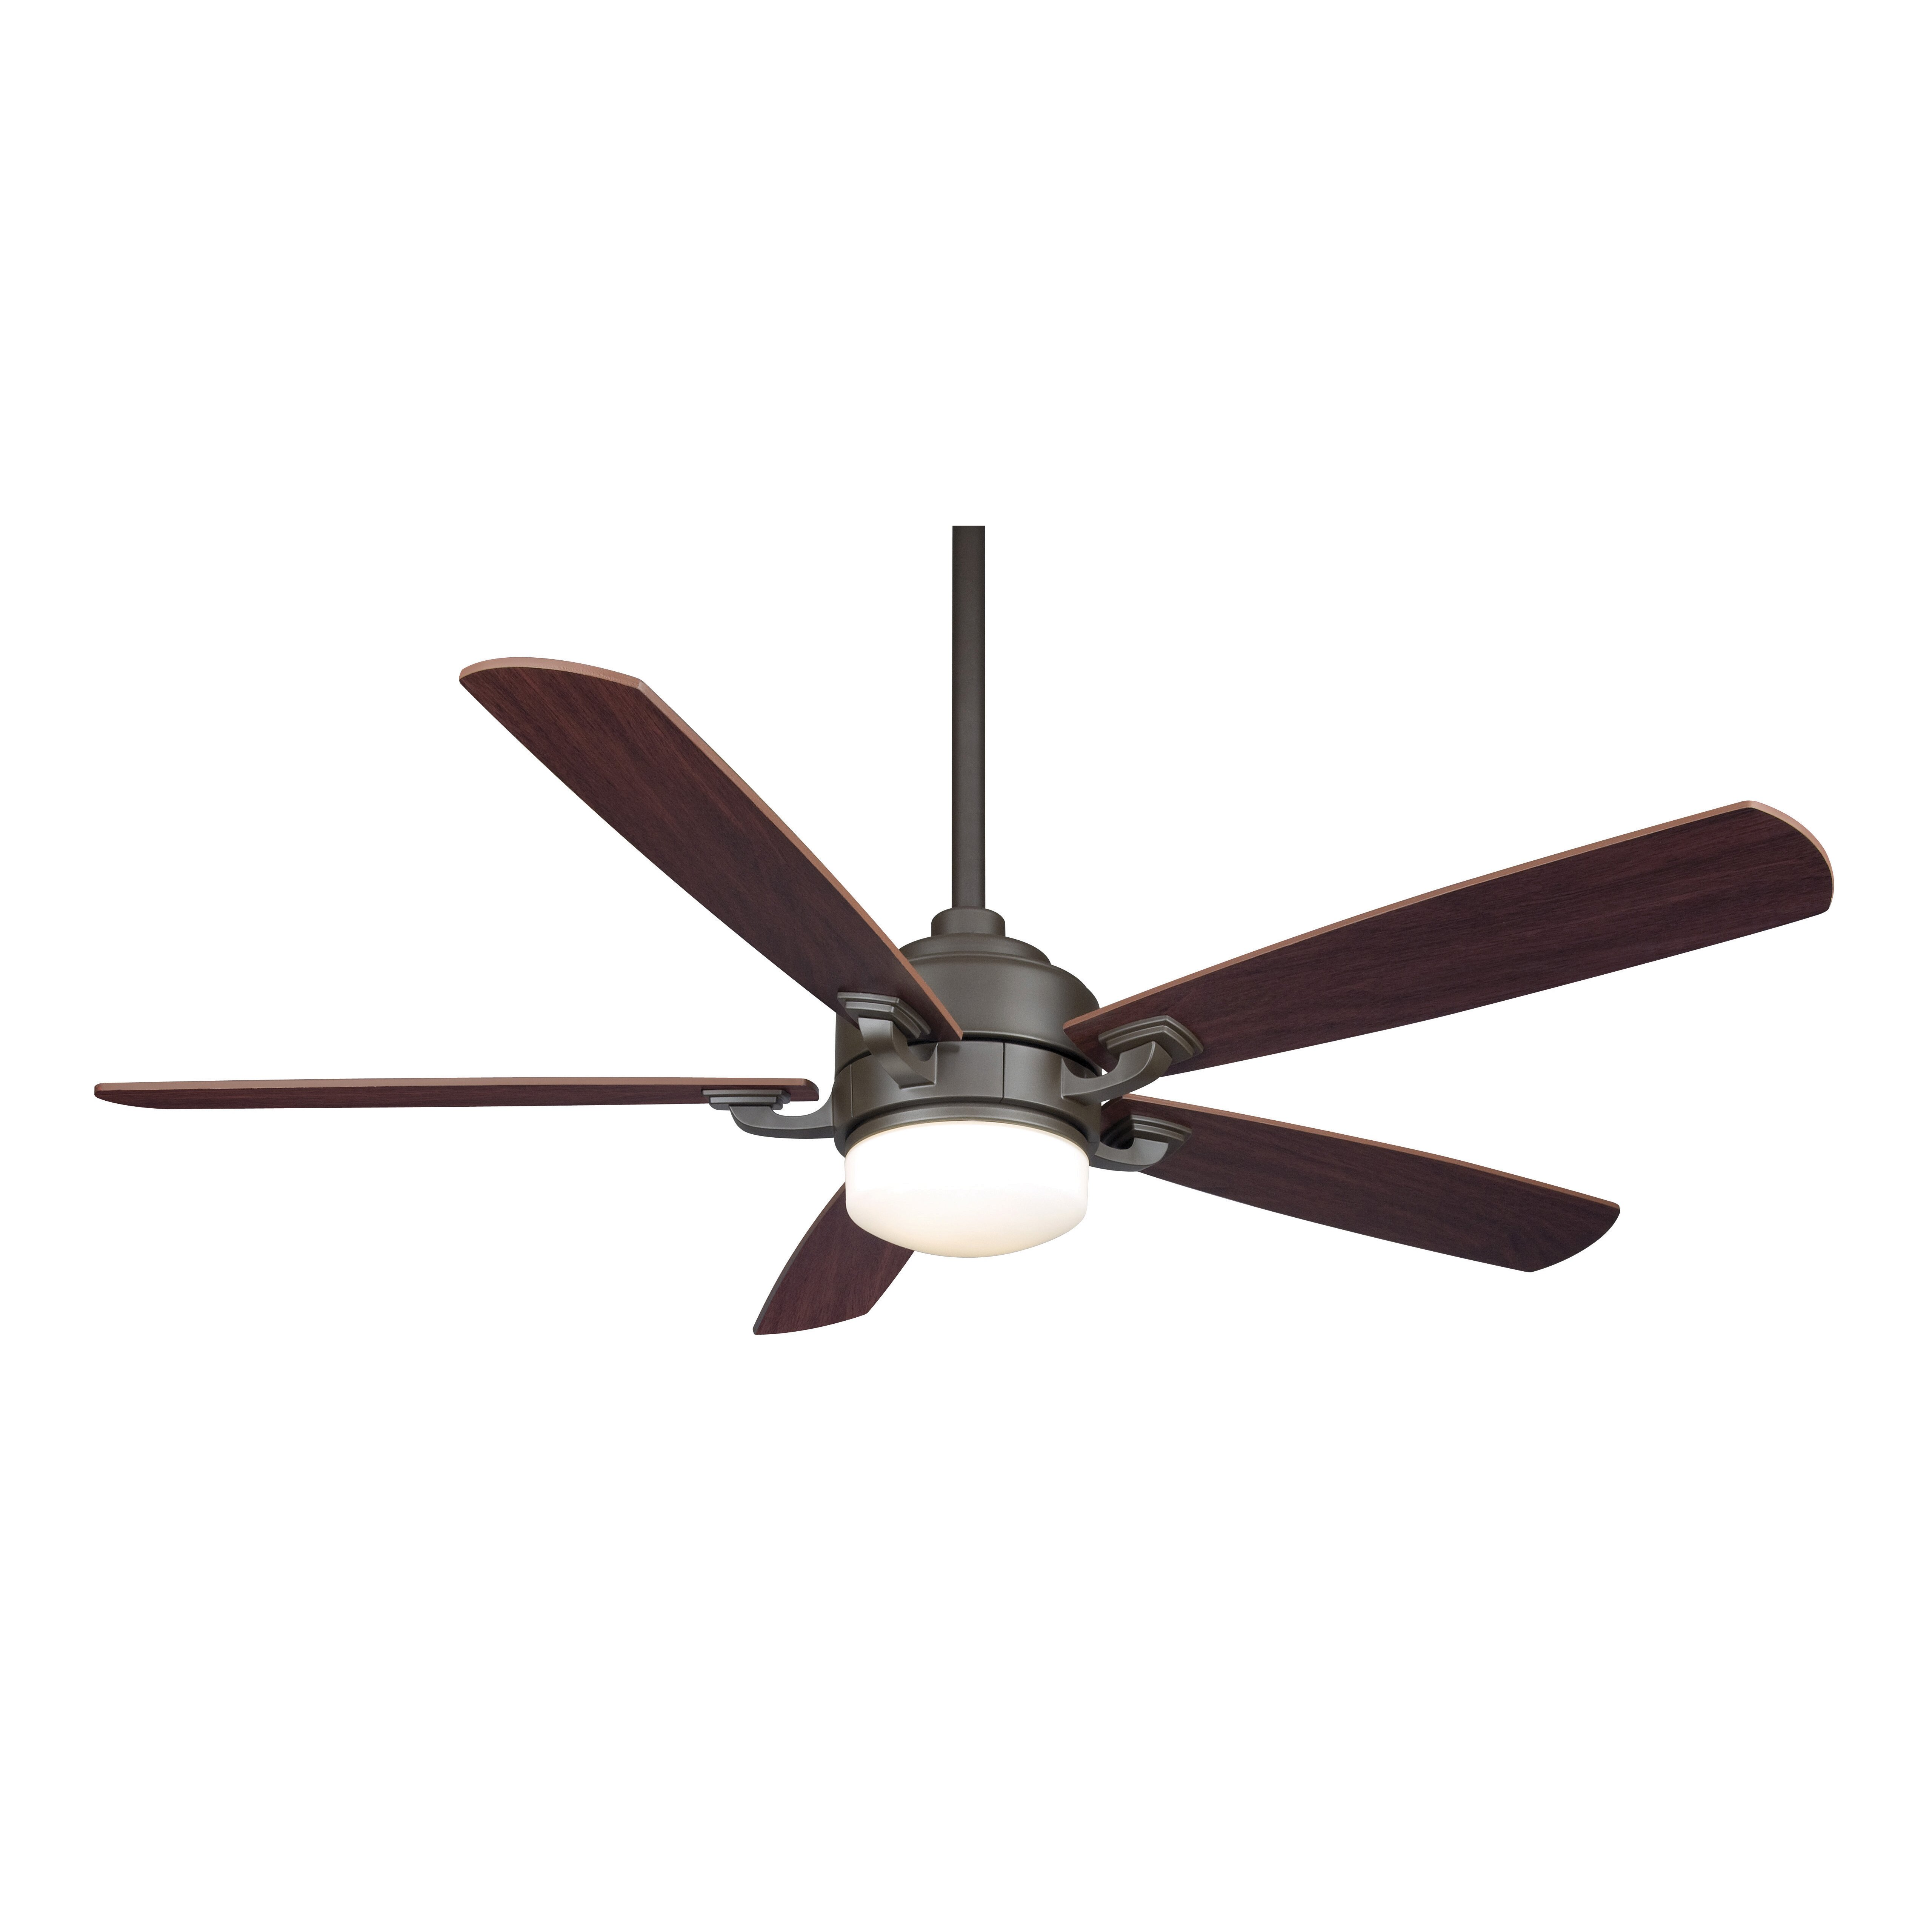 Fanimation 52 Benito 5 Blade Ceiling Fan With Remote